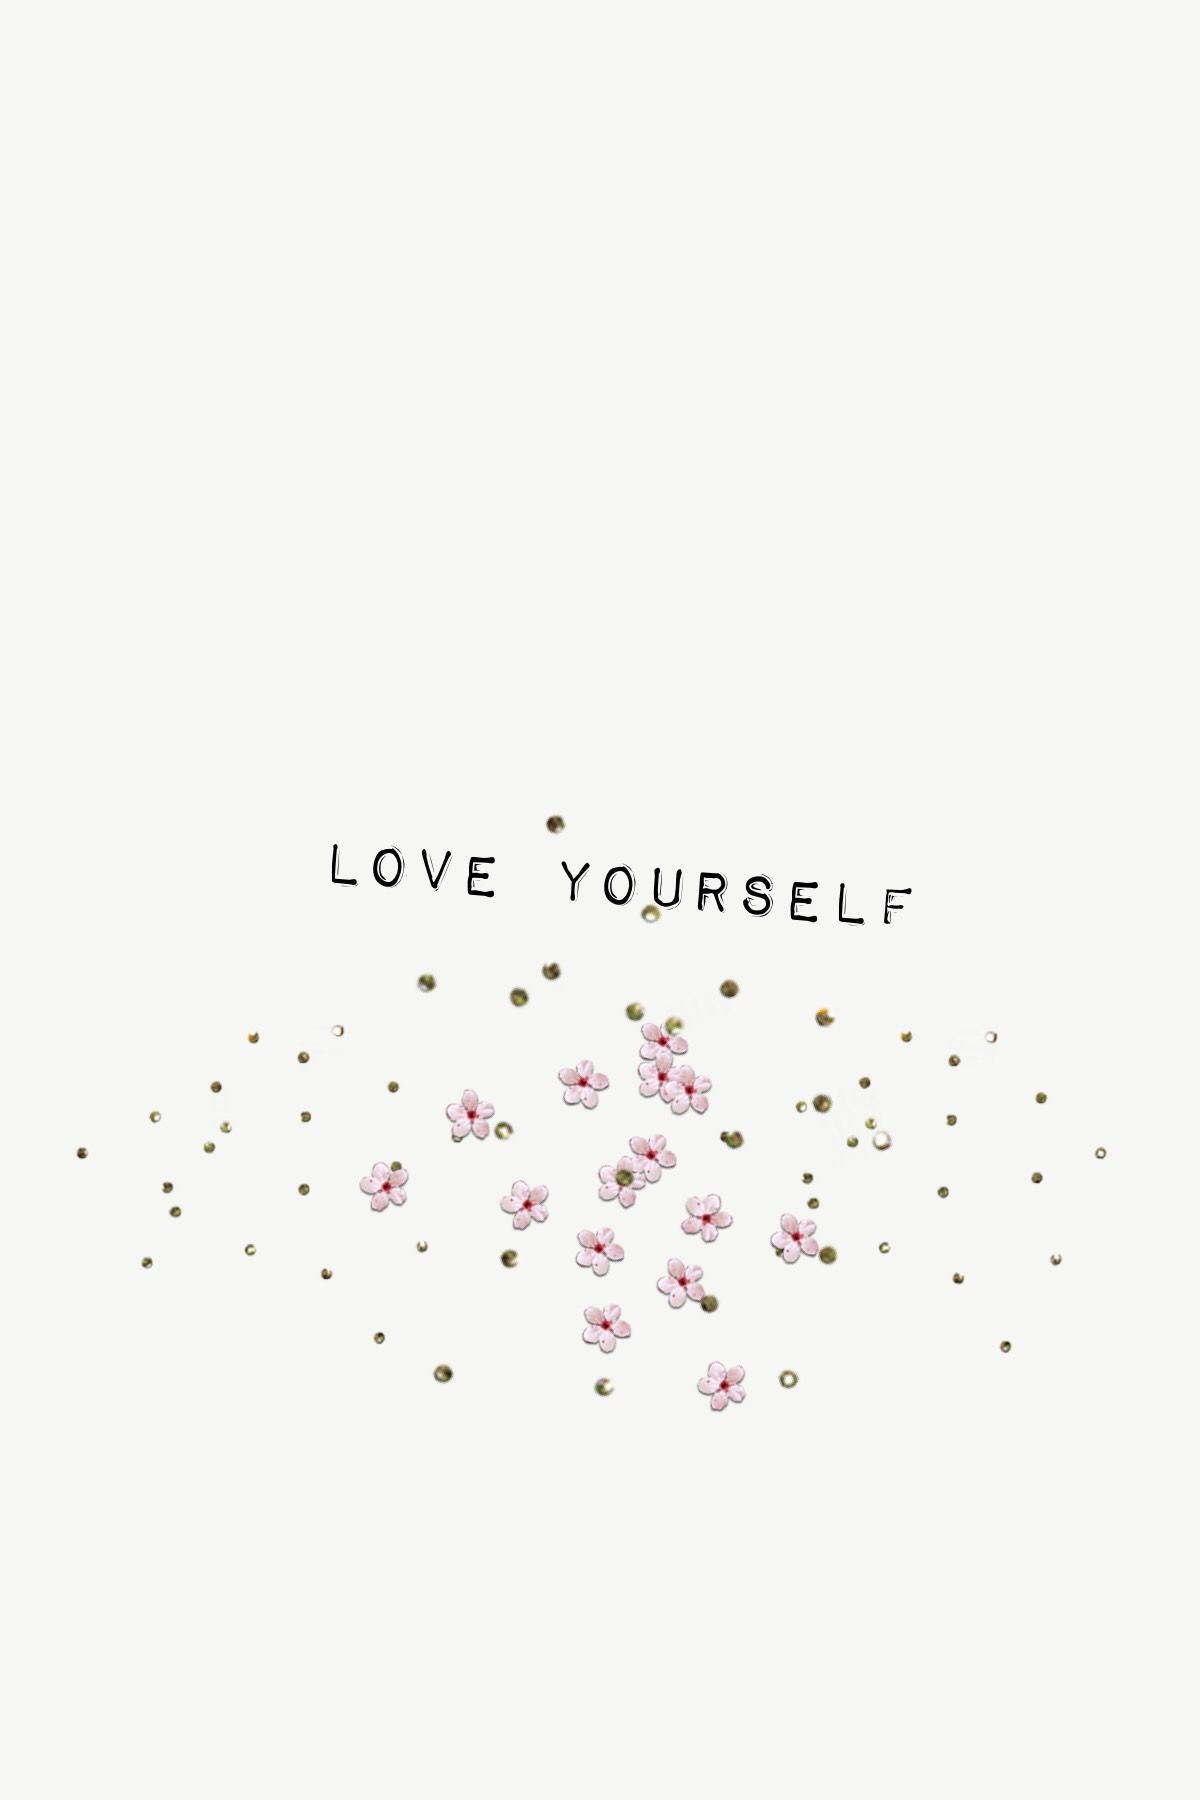 Love Yourself Selflove Seltesteem Recovery Wallpaper Iphone Background Self Love Quotes Self Love Quote Aesthetic Life Quotes Wallpaper Aesthetic self love wallpaper